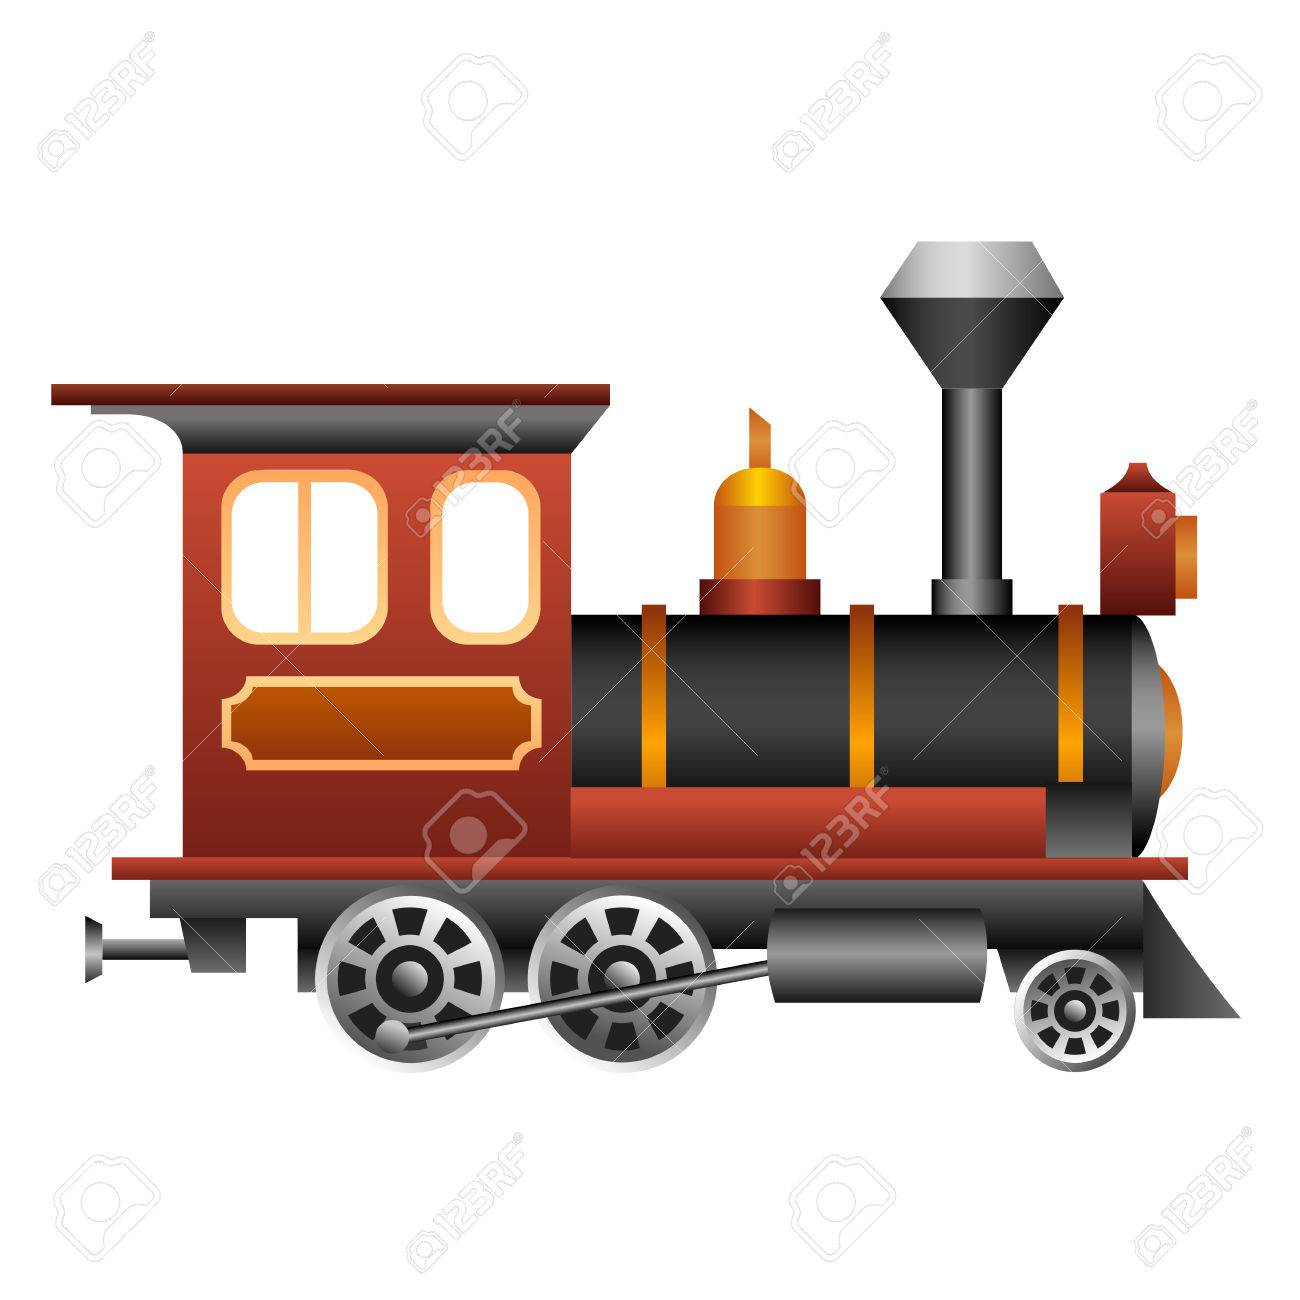 old and vintage train for your design royalty free cliparts rh 123rf com steam train clip art steam engine clipart images